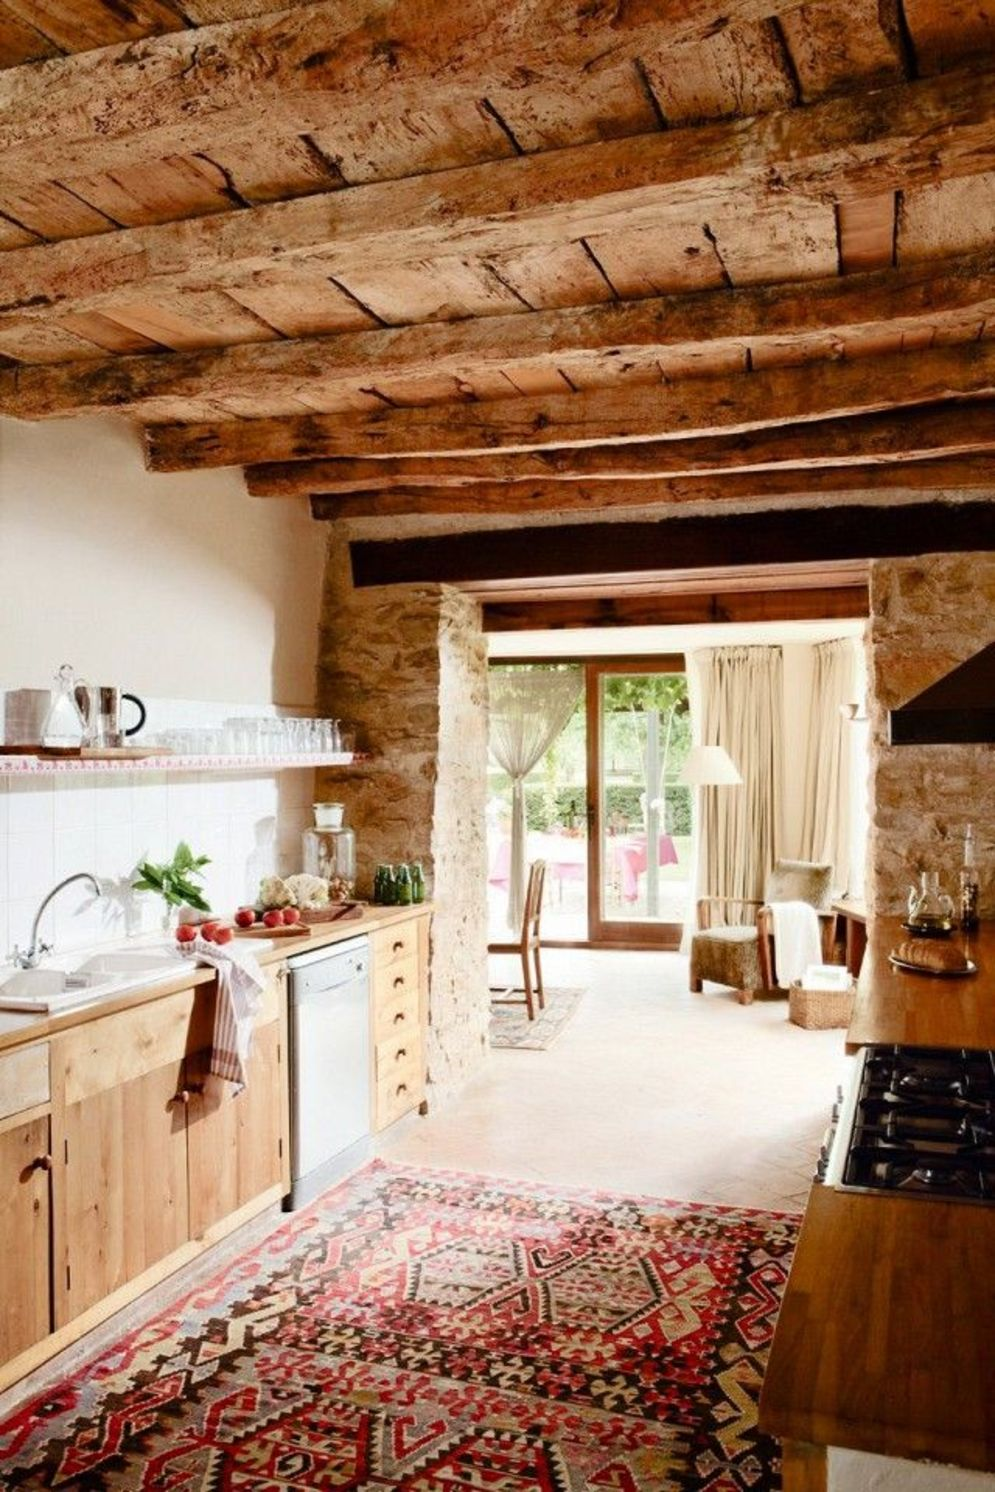 Rustic cabin kitchen designs showing warm wooden structure in earthy natural palettes Image 22